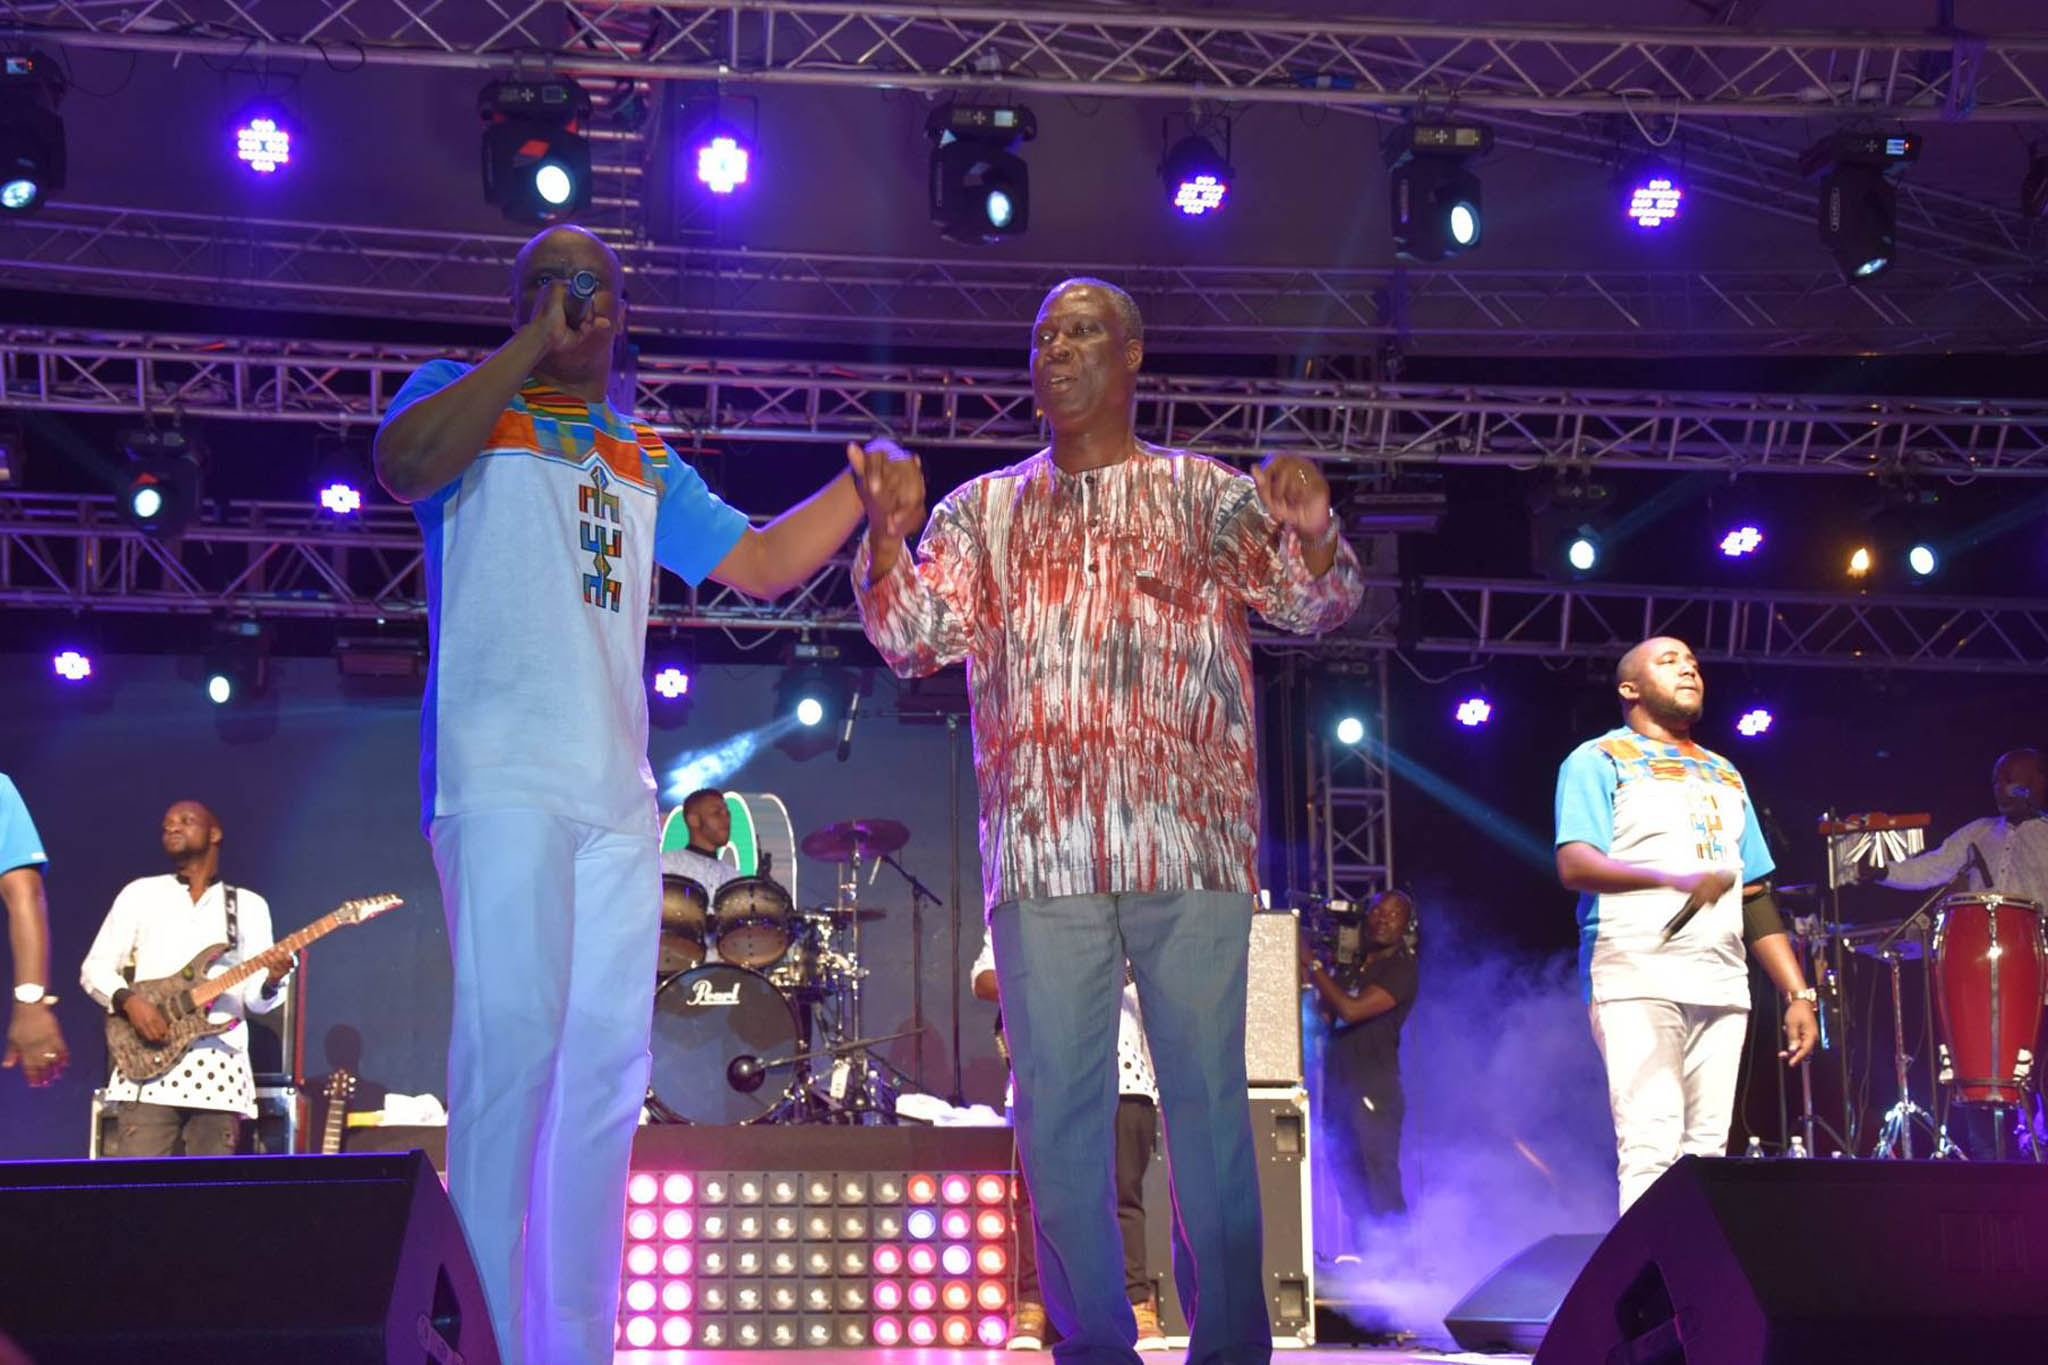 20 Years Magic System @ Culture Palace of Abidjan (Ivory Coast)